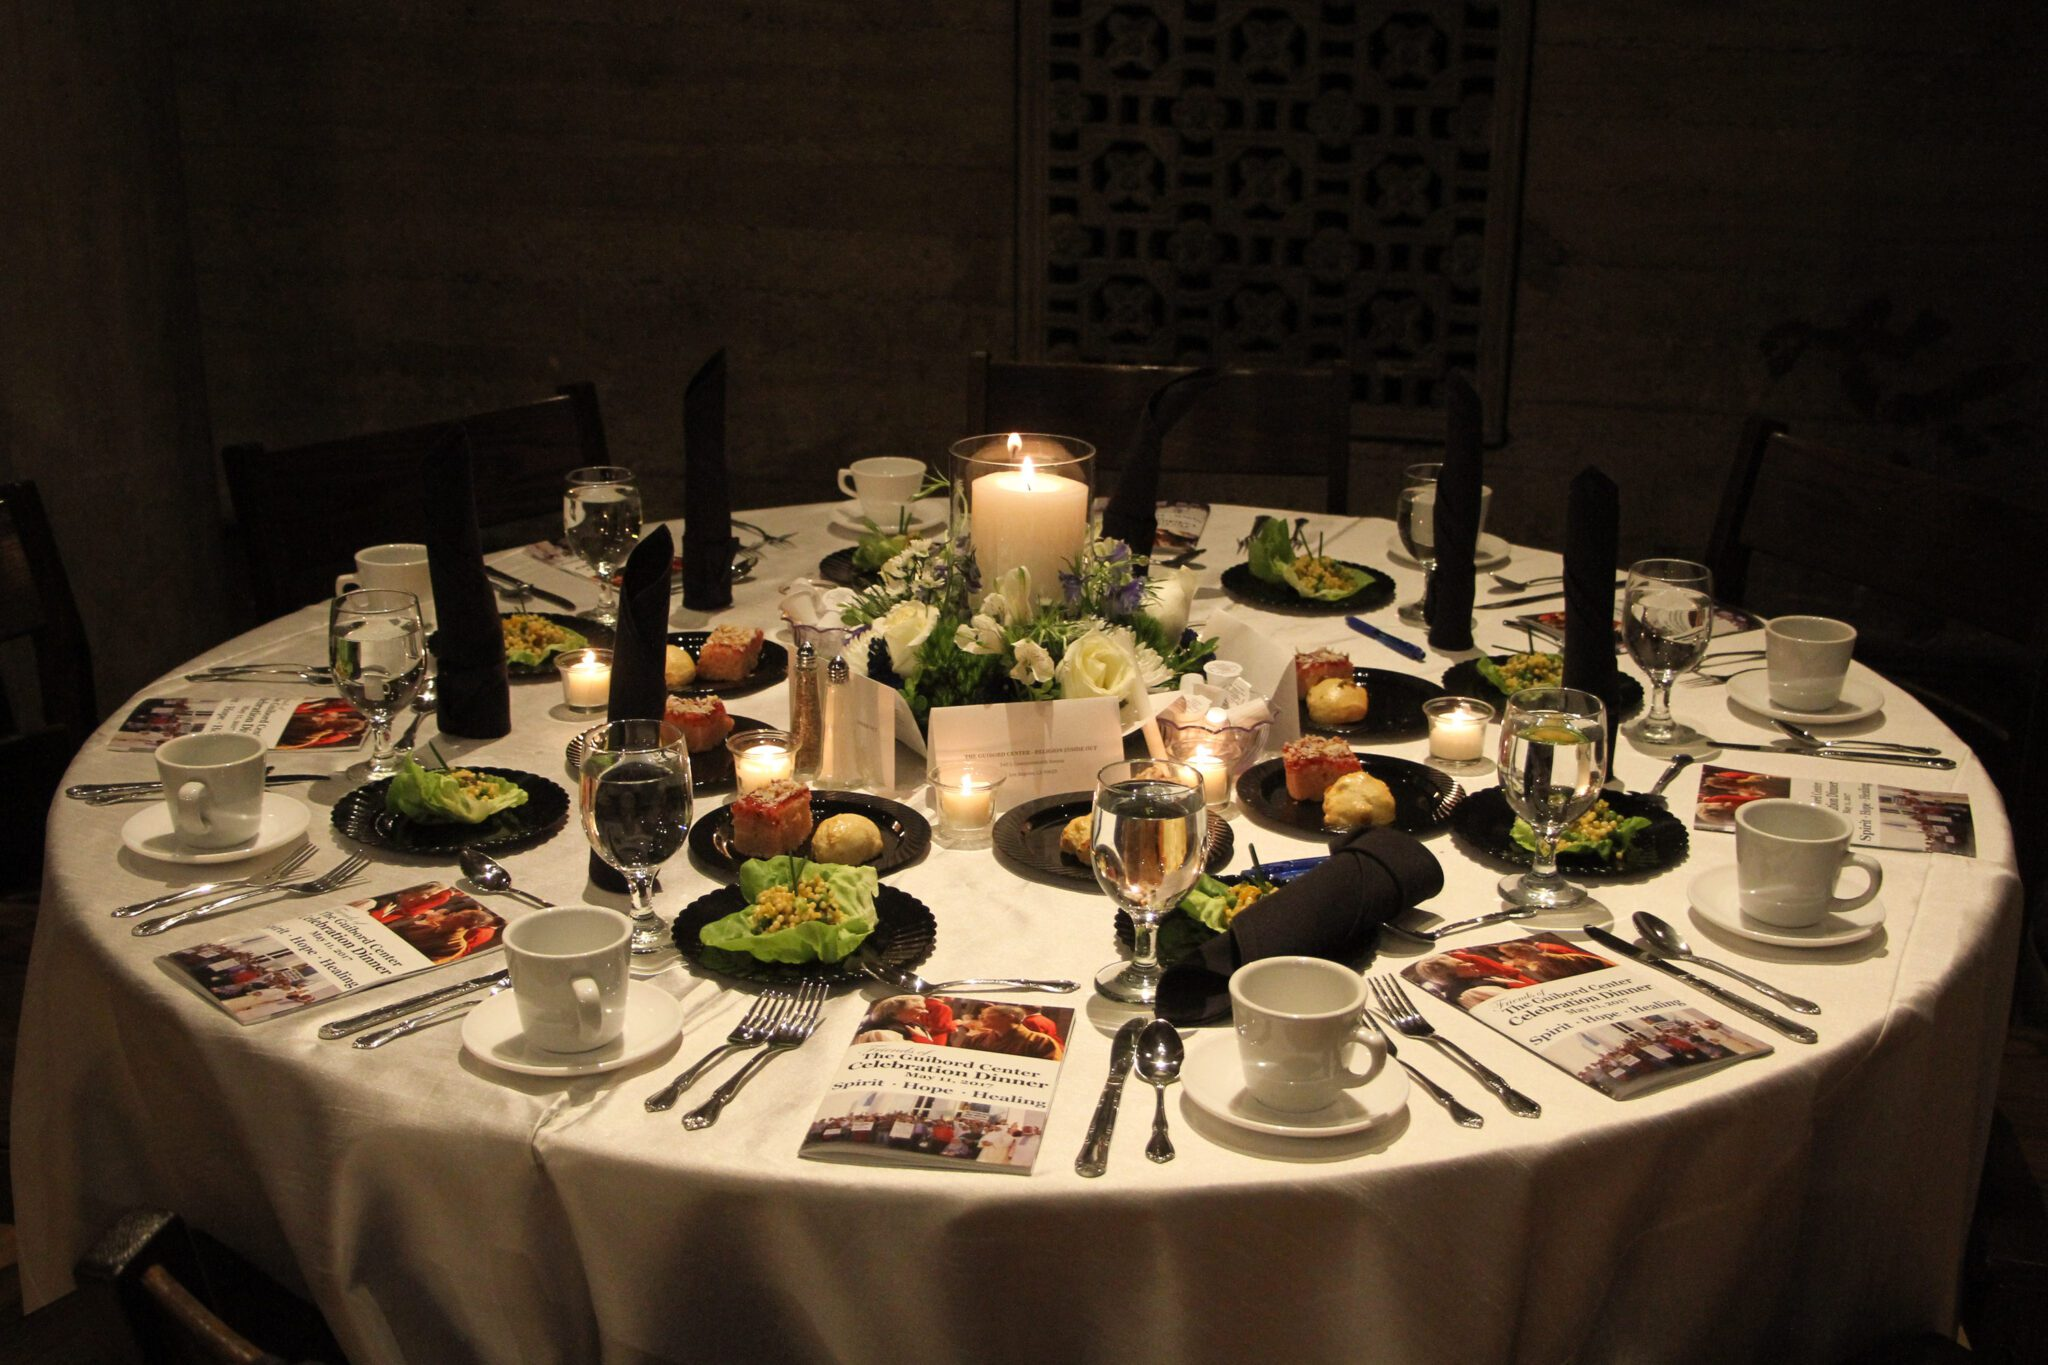 The Guibord Center Fundraising Dinner